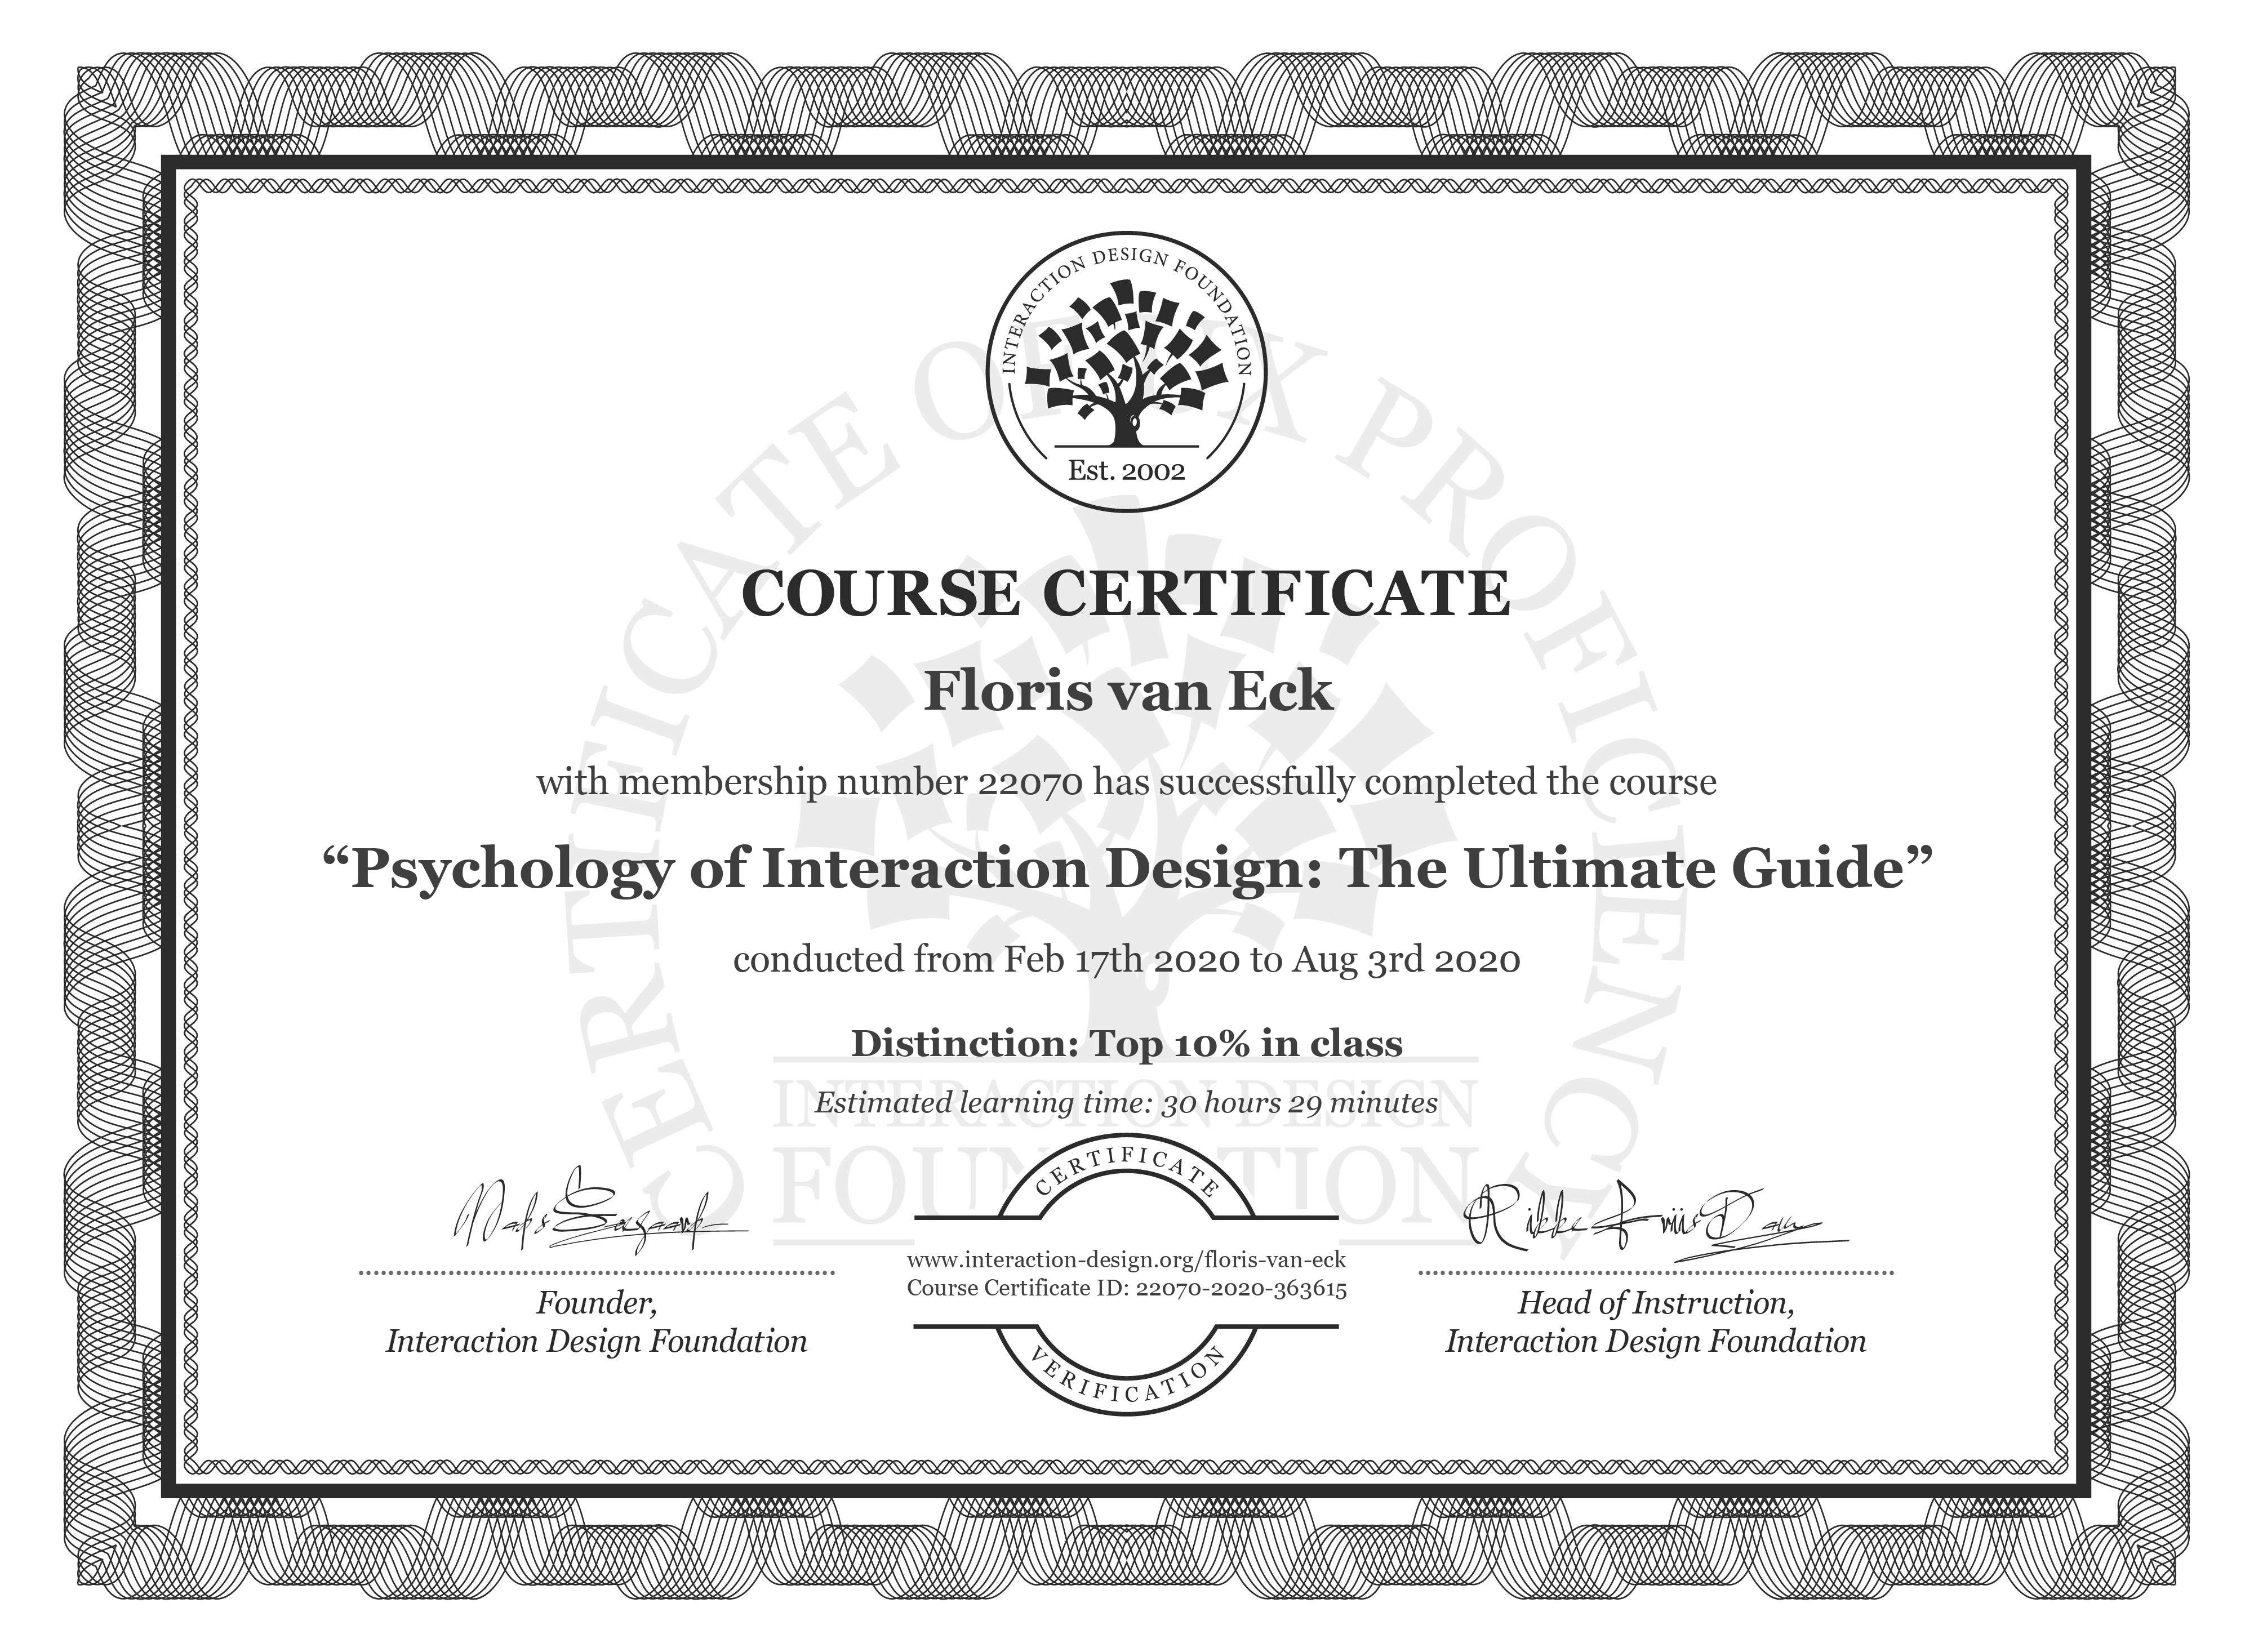 Floris van Eck's Course Certificate: Psychology of Interaction Design: The Ultimate Guide